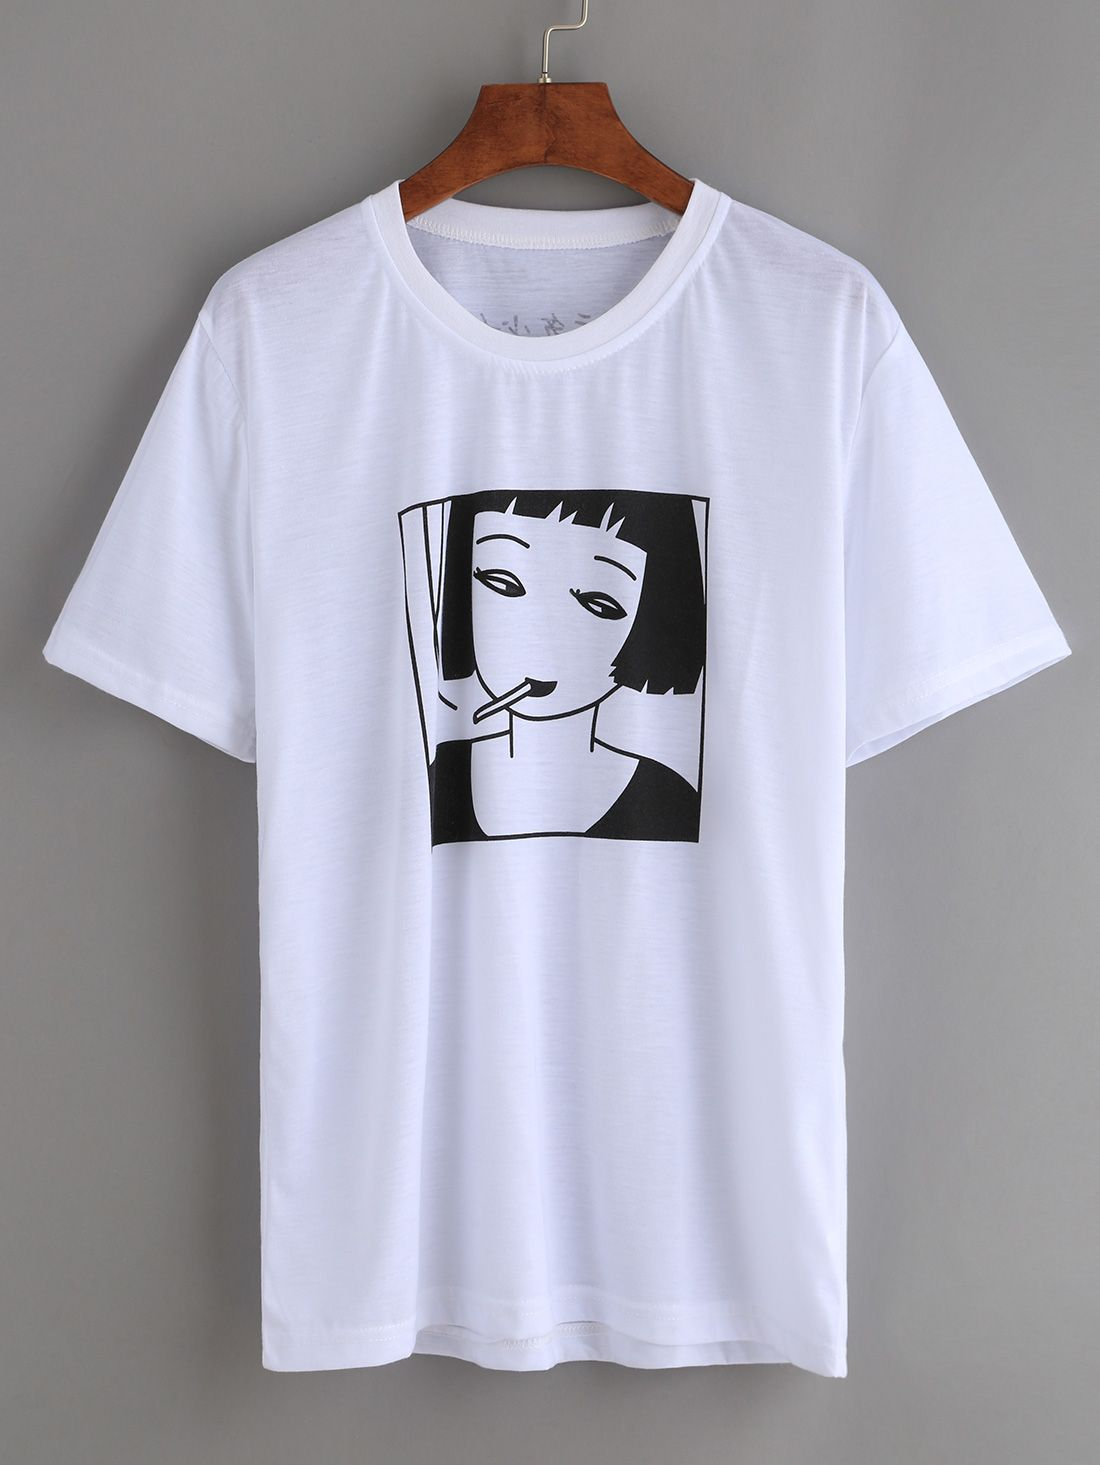 1ae89b59b Shop White Smoking Girl Print T-shirt online. SheIn offers White Smoking  Girl Print T-shirt & more to fit your fashionable needs.